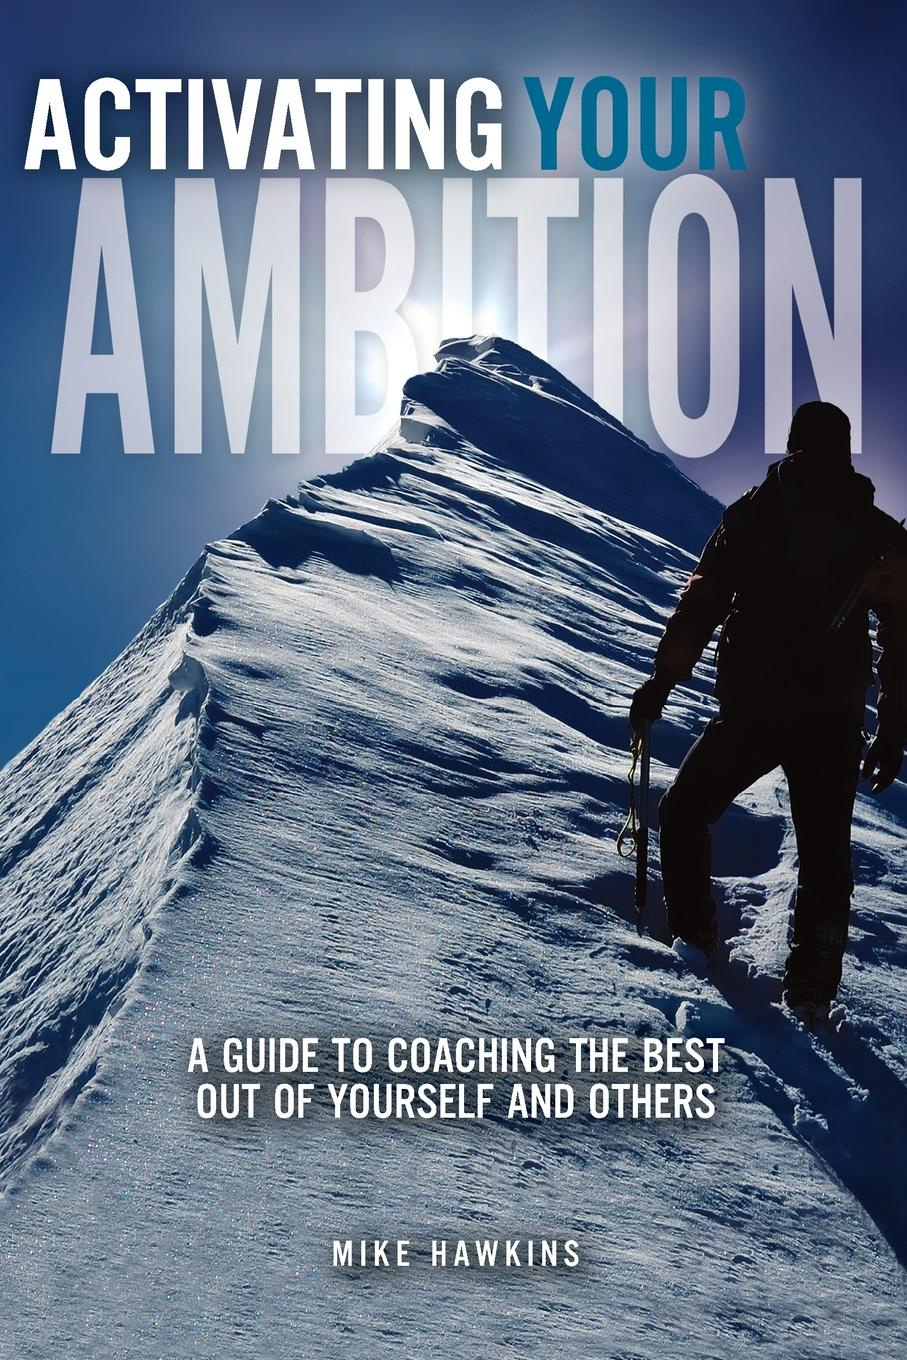 Mike Hawkins Activating Your Ambition. A Guide to Coaching the Best Out of Yourself and Others john adair how to find your vocation a guide to discovering the work you love